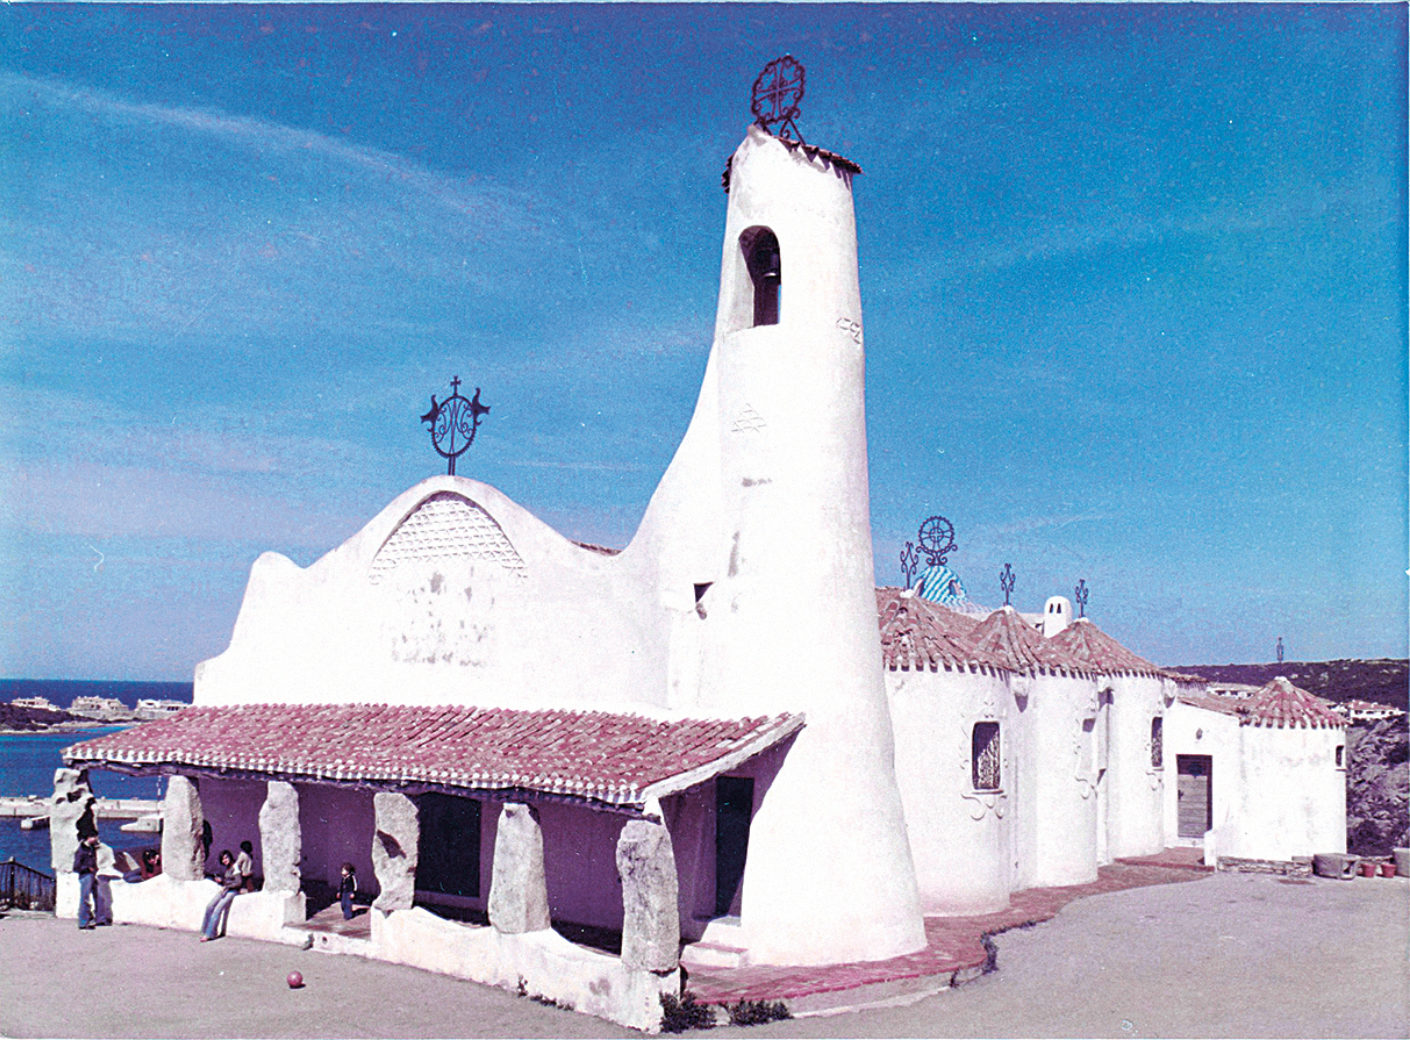 The church Stella Maris in Porto Cervo by Michele Busiri Vici (photo from the 1970s)